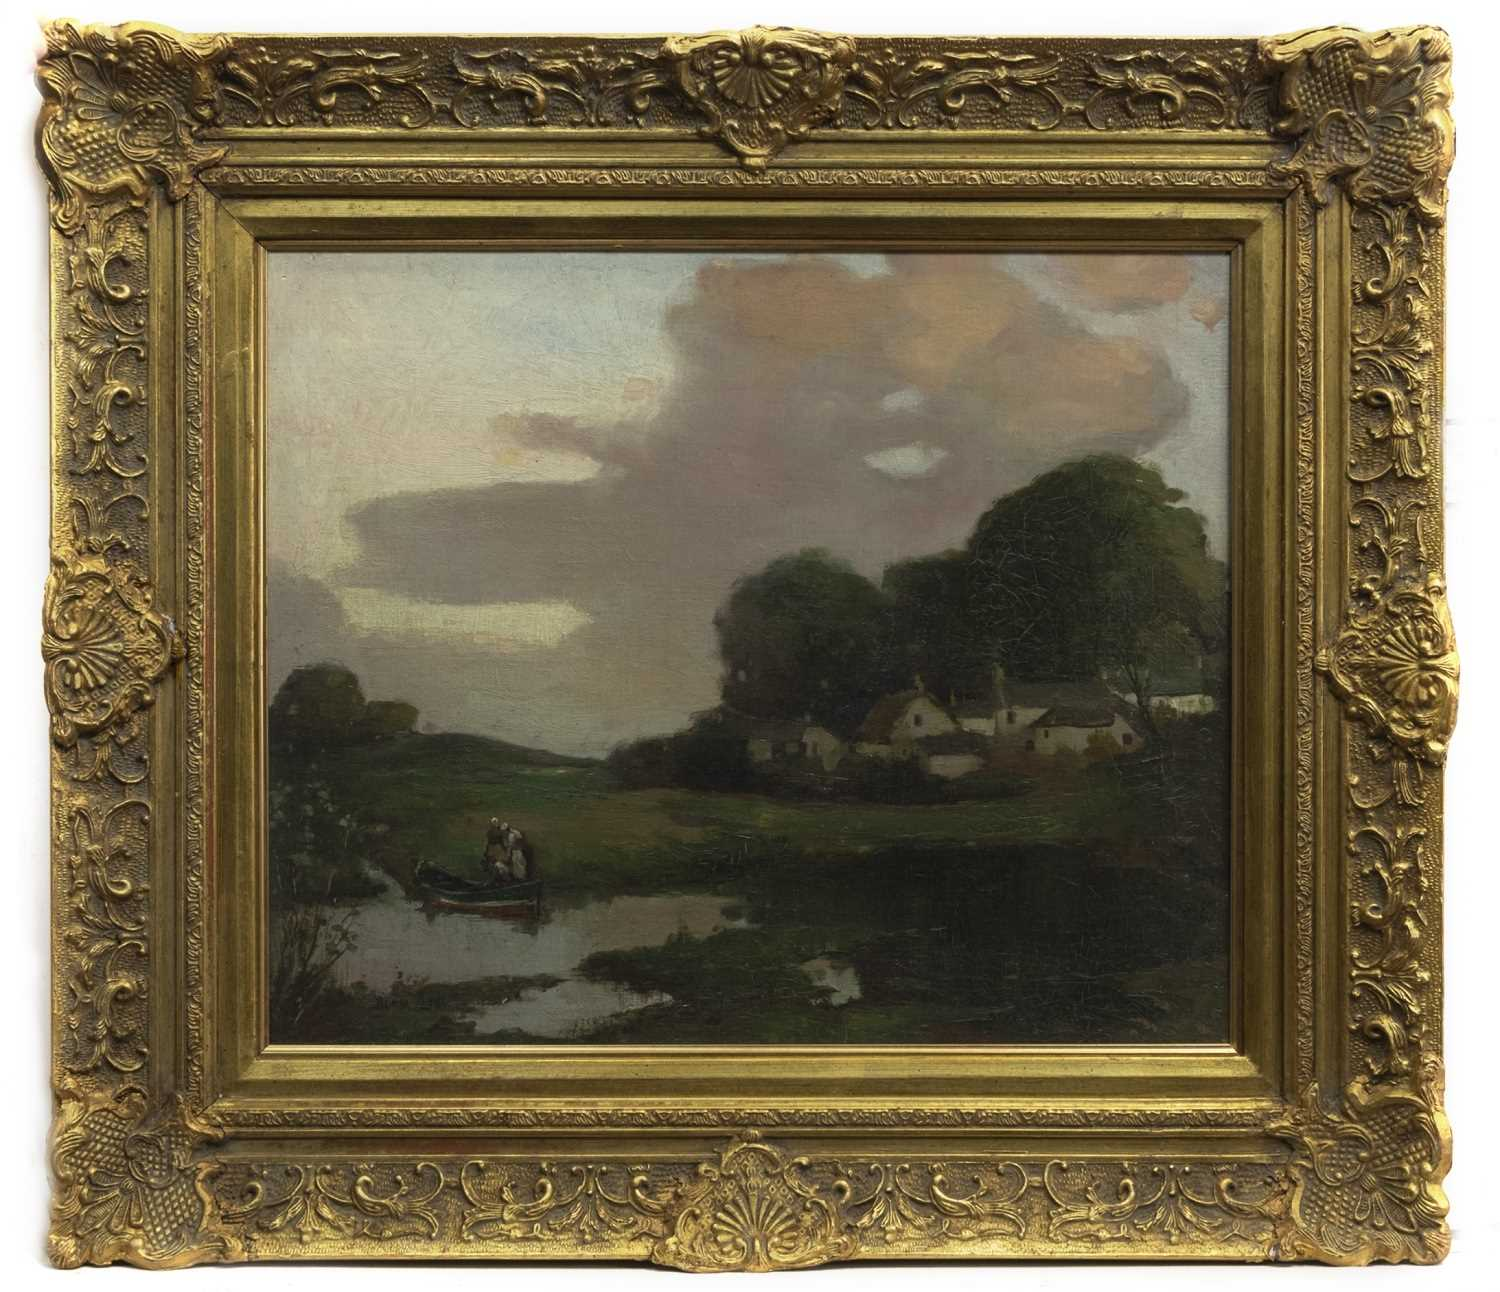 Lot 70 - LANDSCAPE, CONTINENTAL CANAL SCENE, AN OIL BY THOMAS BONAR LYON